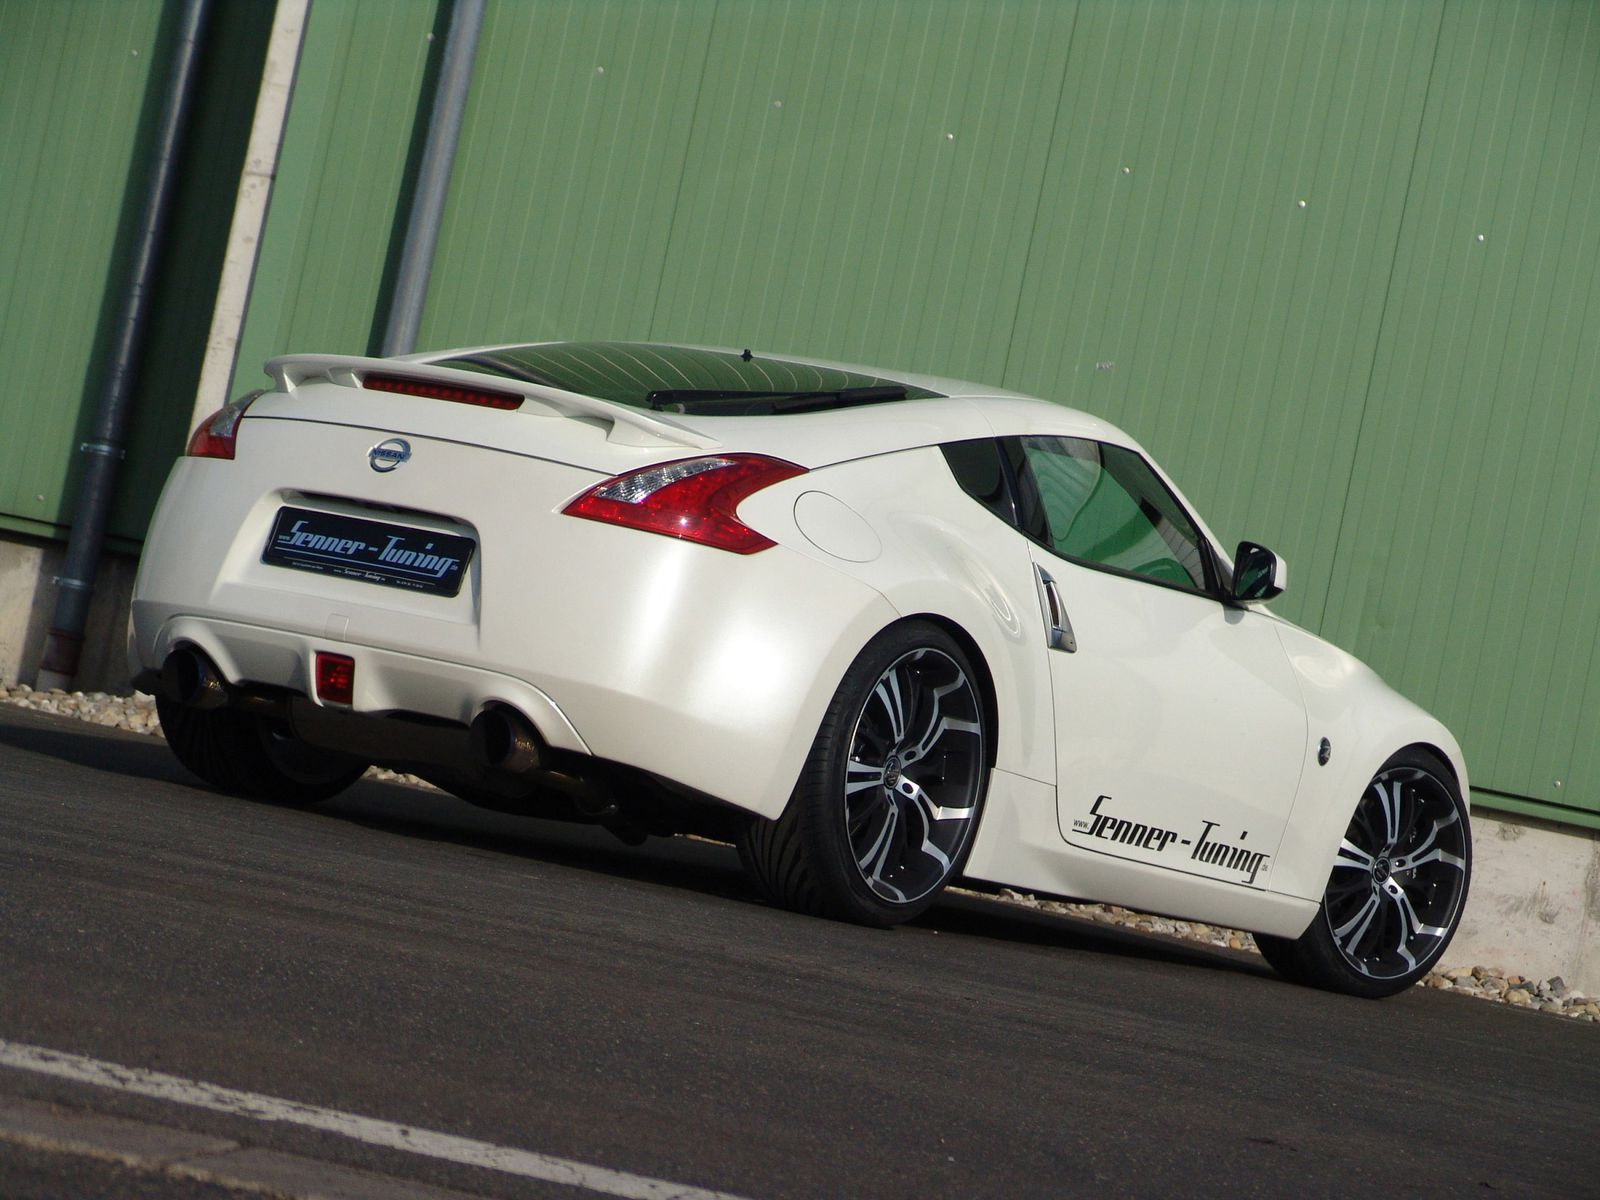 2010 senner tuning nissan 370z dark cars wallpapers. Black Bedroom Furniture Sets. Home Design Ideas